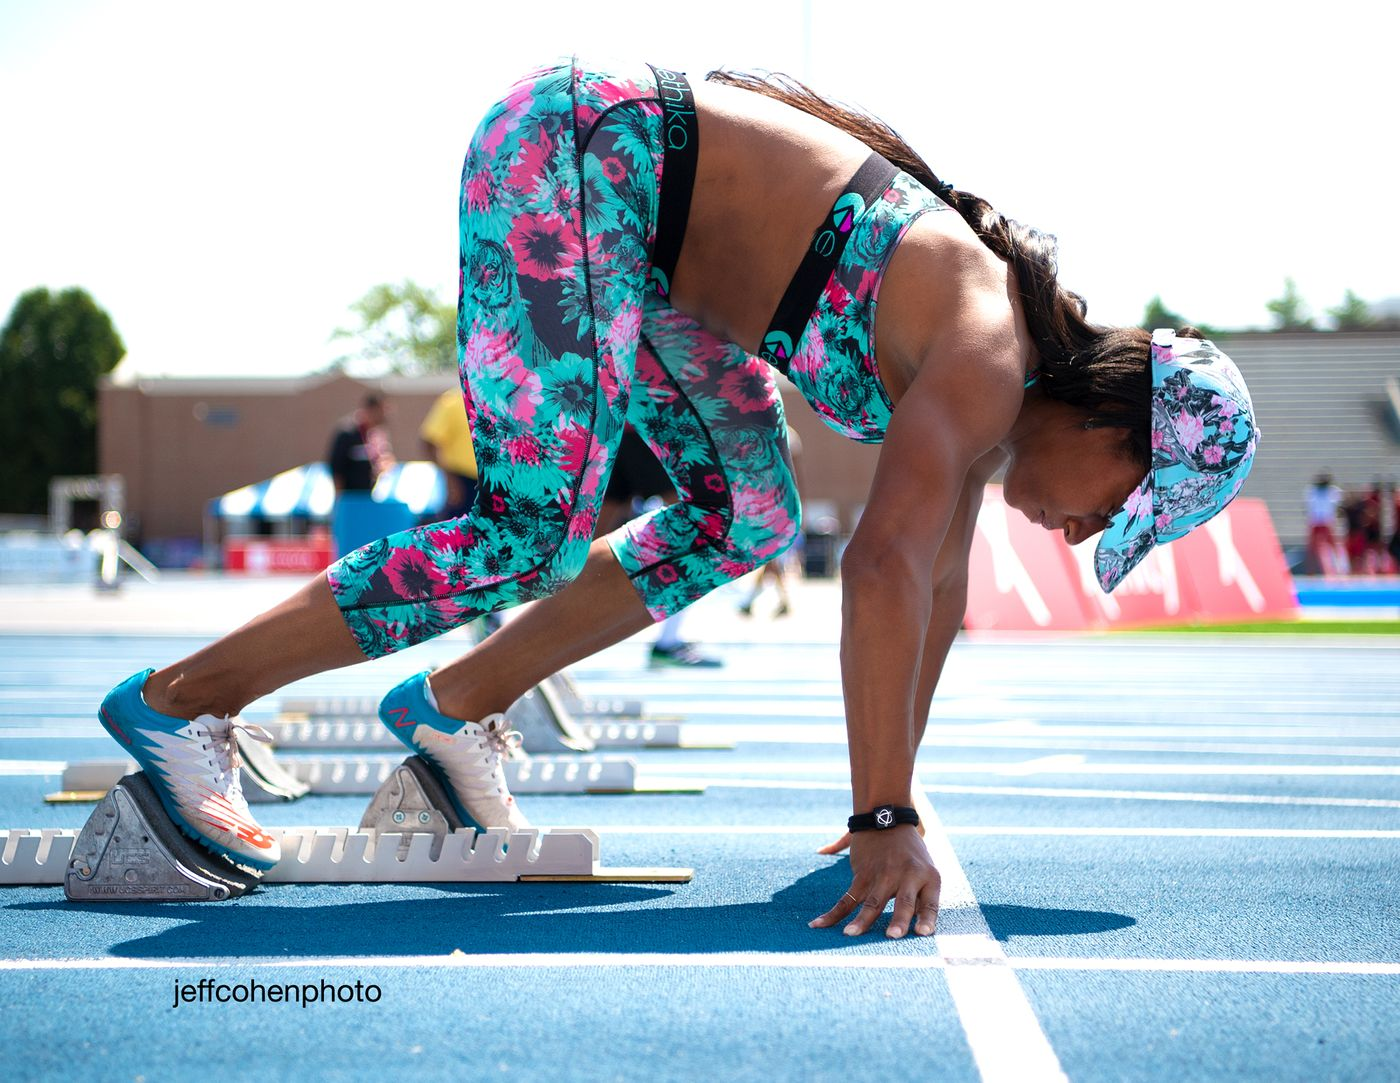 Miki Barber, 2019 Toyota Usatf Outdoor Championships, Des Moines, Iowa.